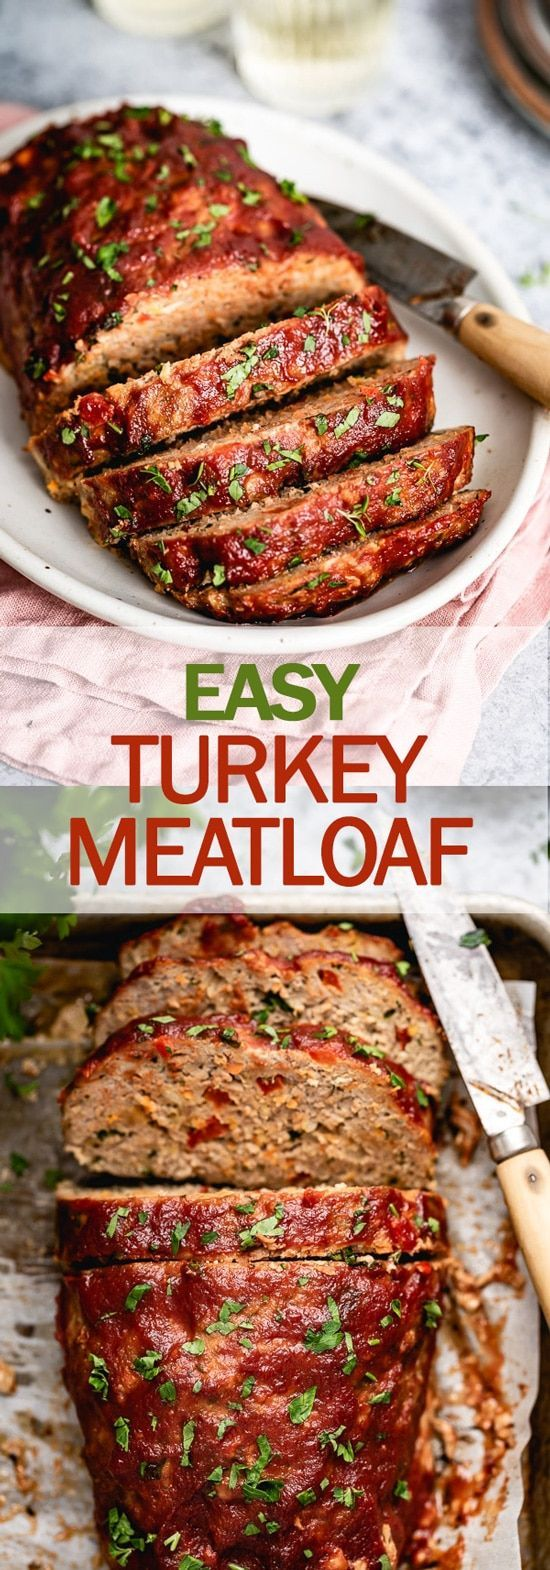 Photo of This Ground Turkey Meatloaf is a leaner take on the American classic meatloaf we…